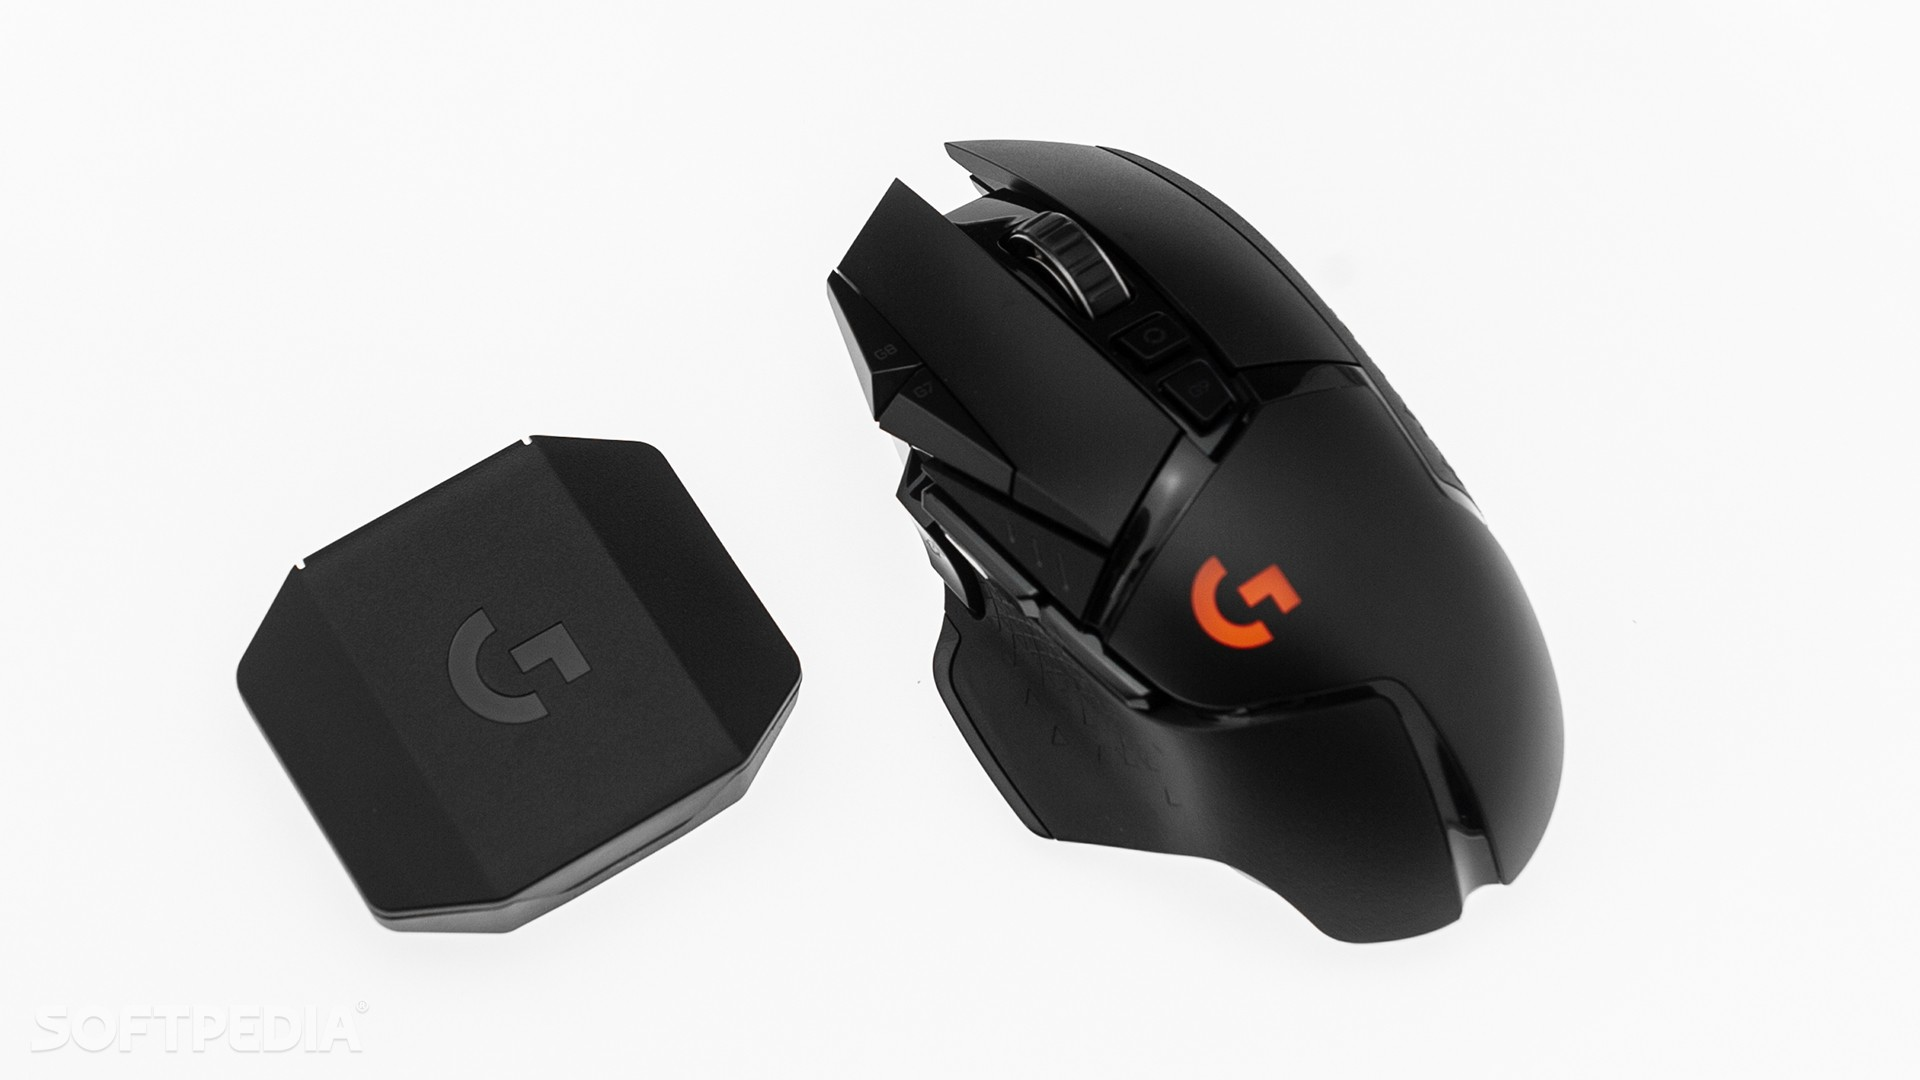 Logitech G502 Lightspeed Review - The Almost Perfect Gaming